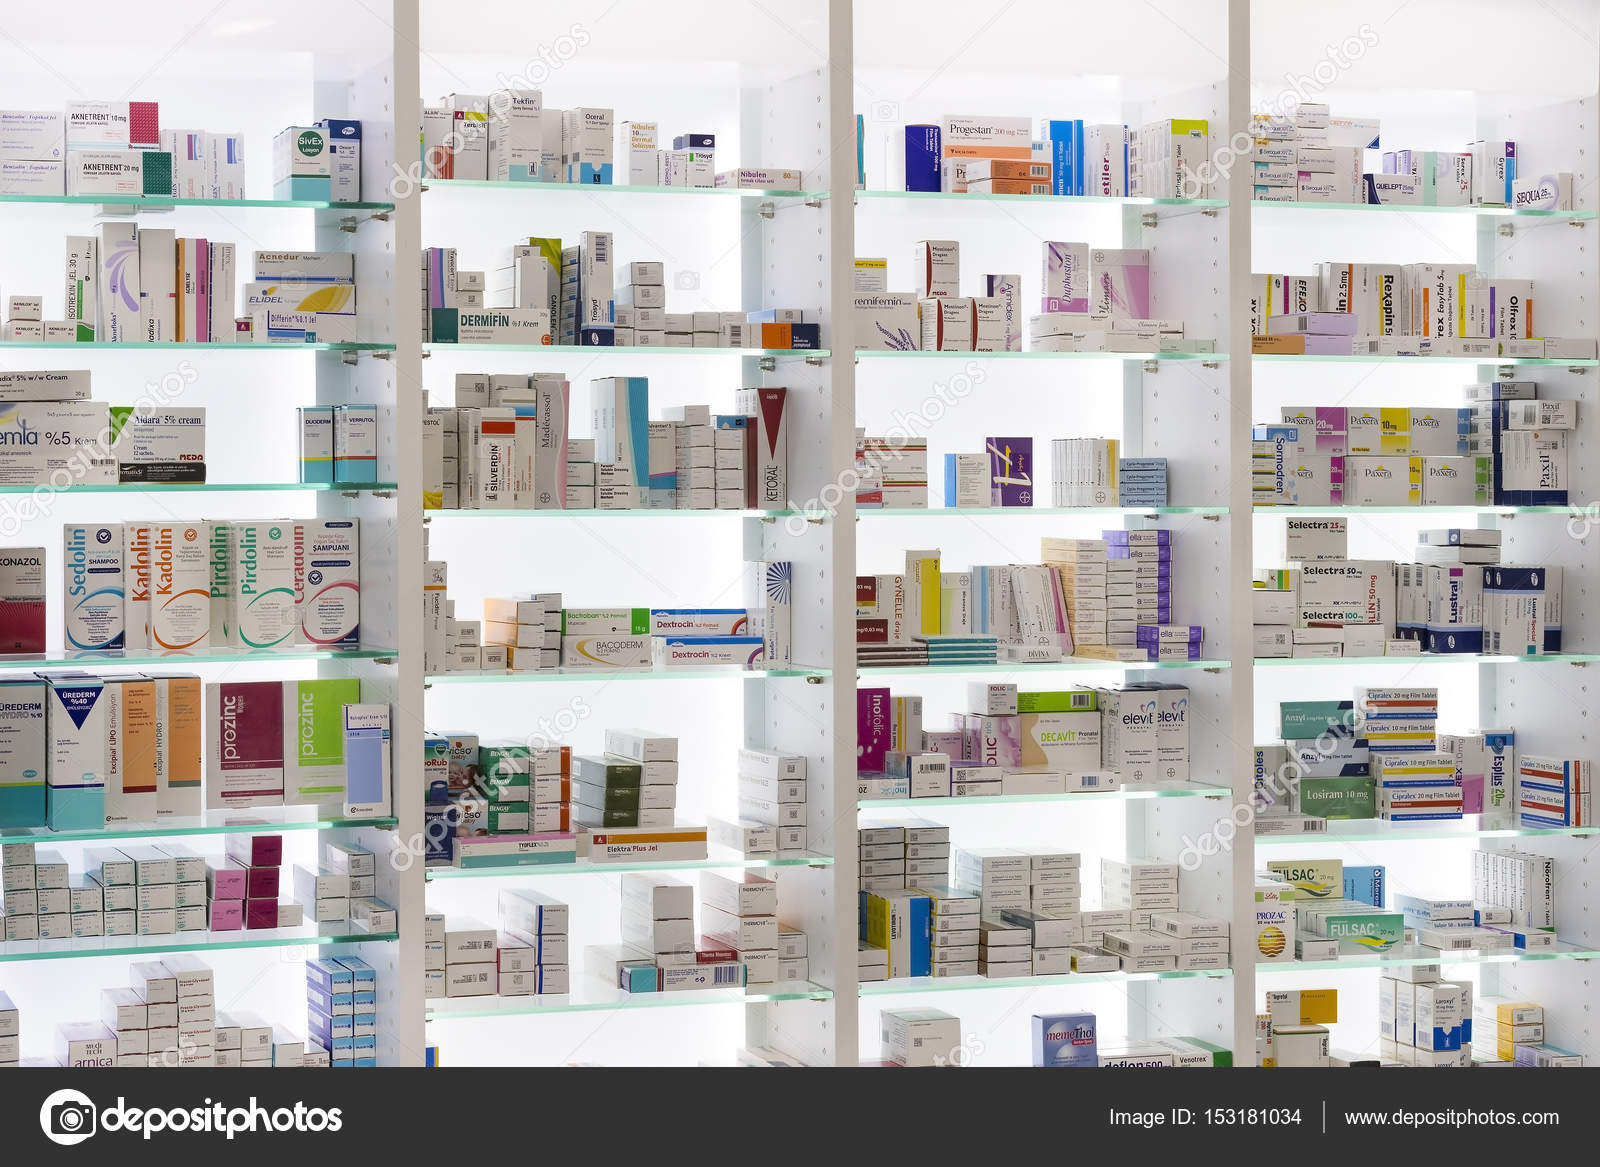 Pharmacy Cabinets With Medicines And Drugs Tablets And Food Additives U2014  Stock Photo